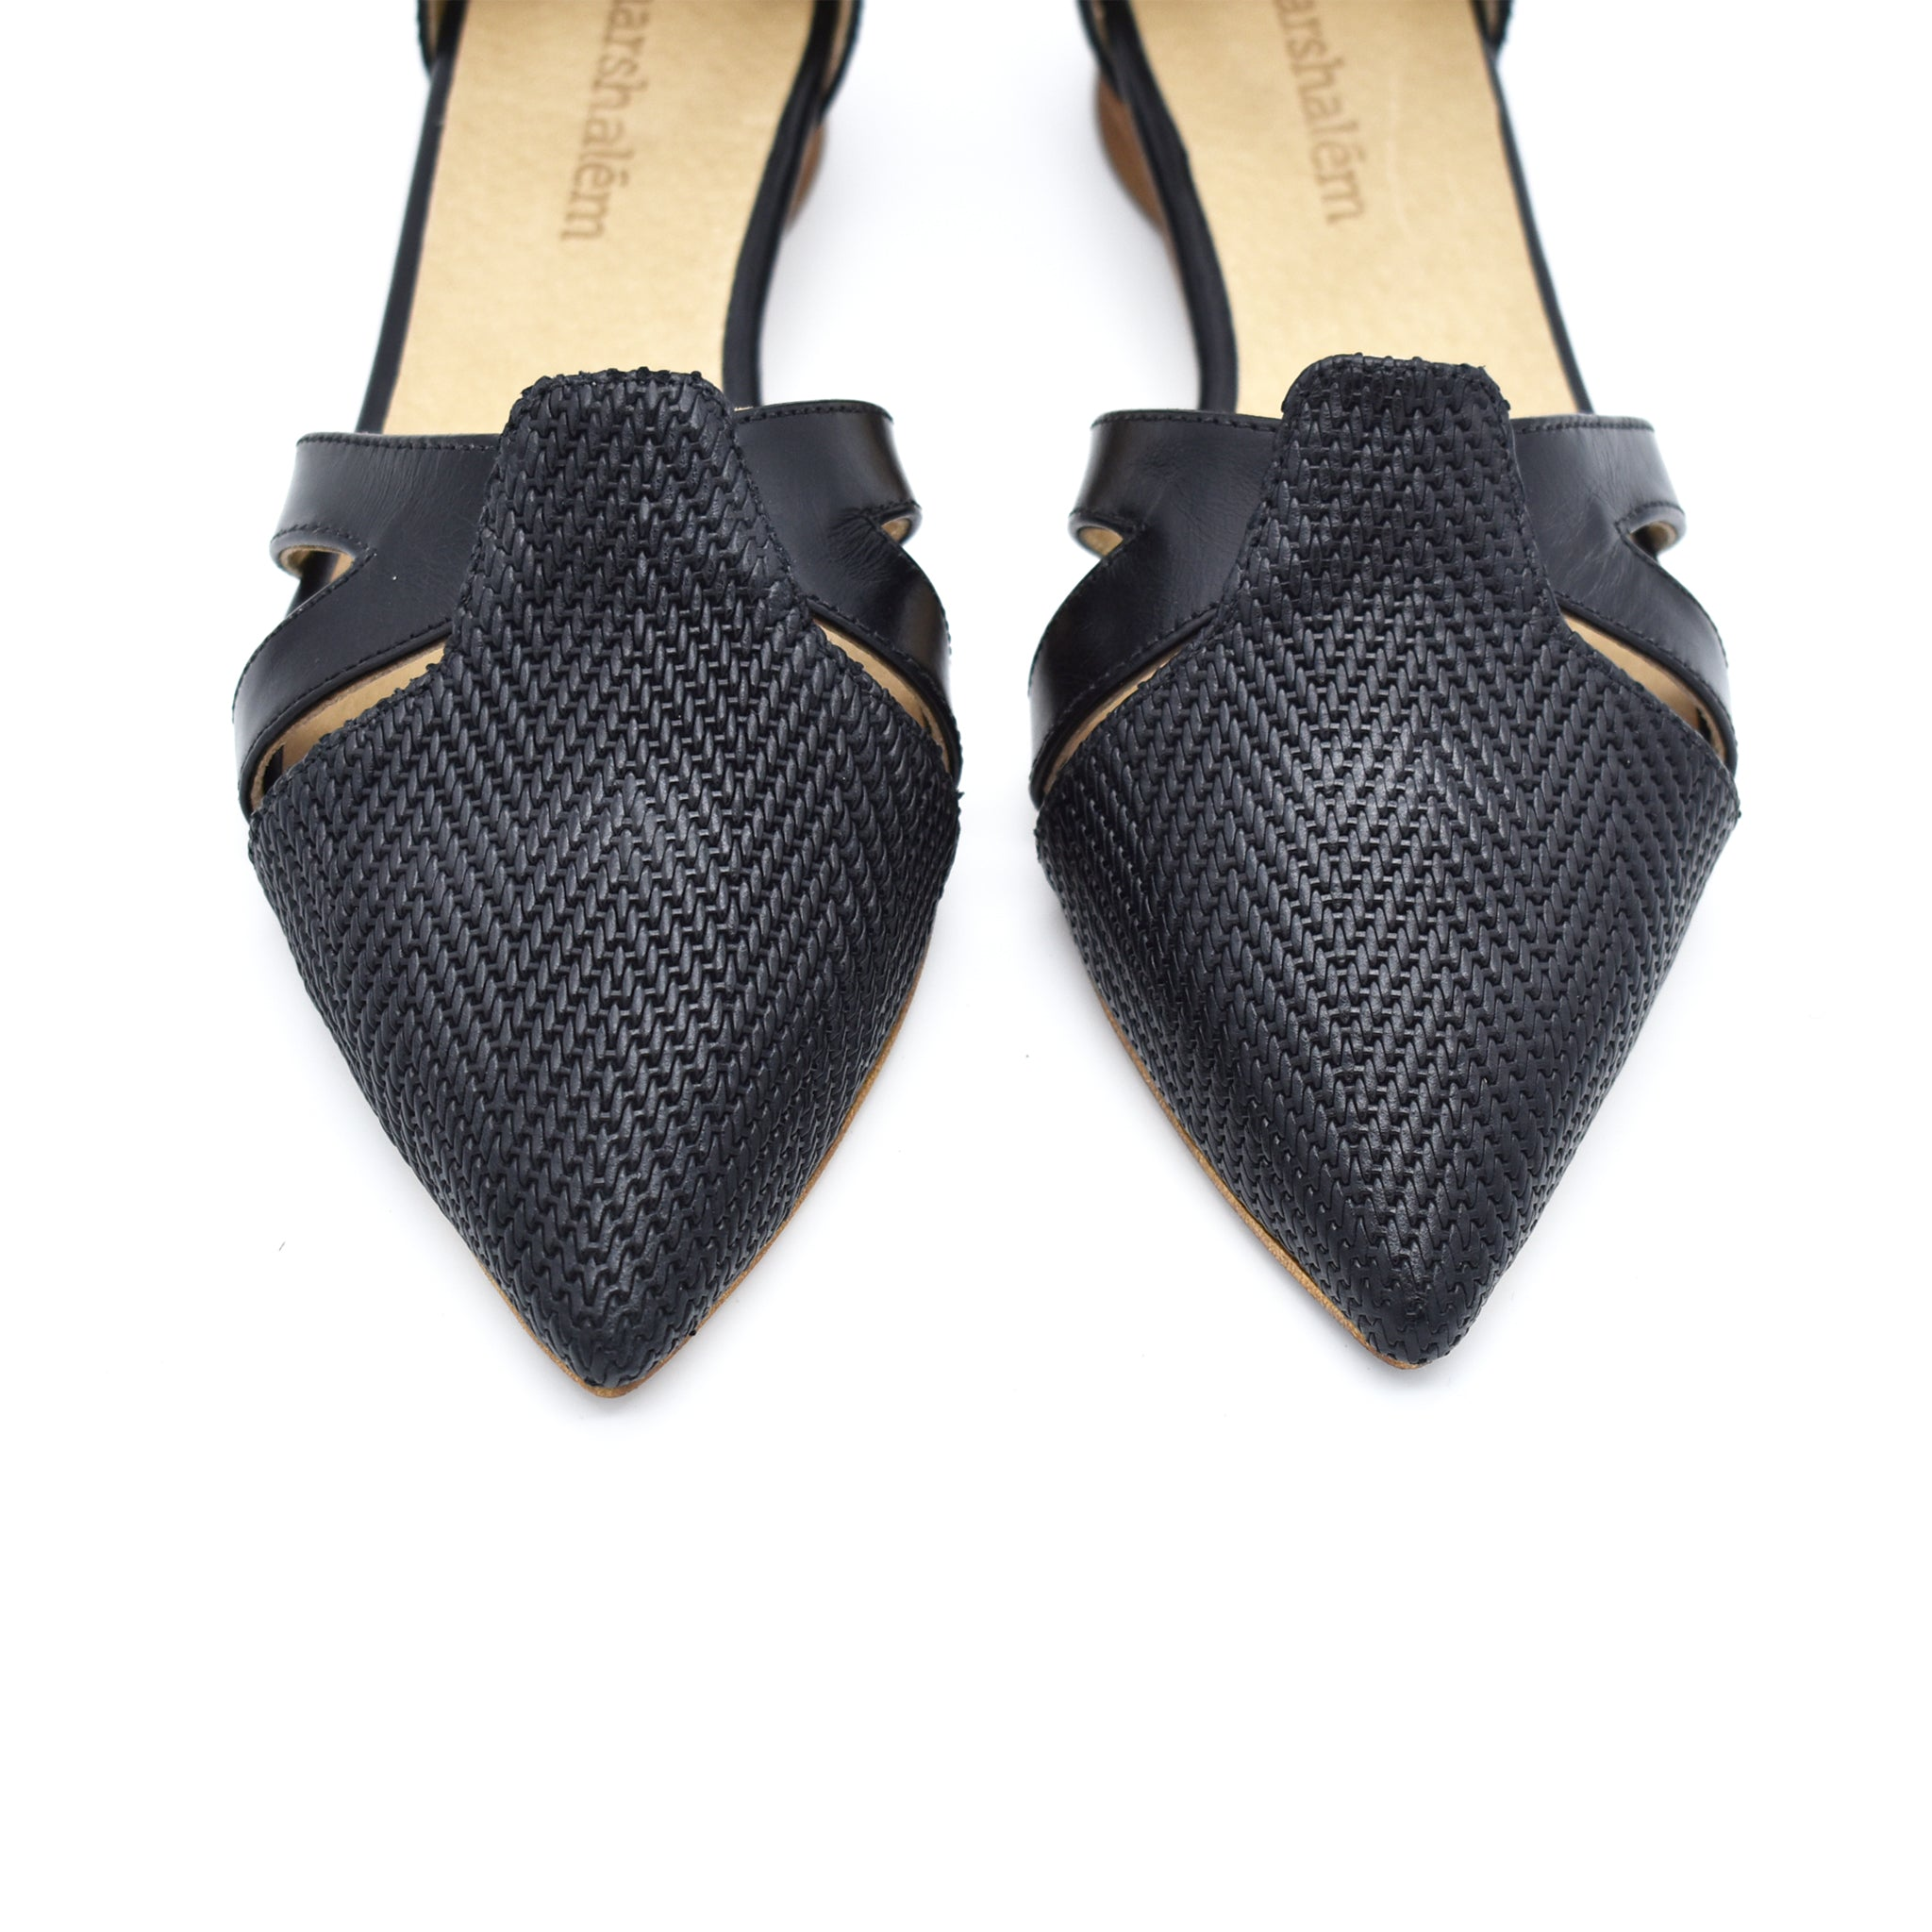 Vivian buckle closure sandals in black, Made to order 3-4 weeks